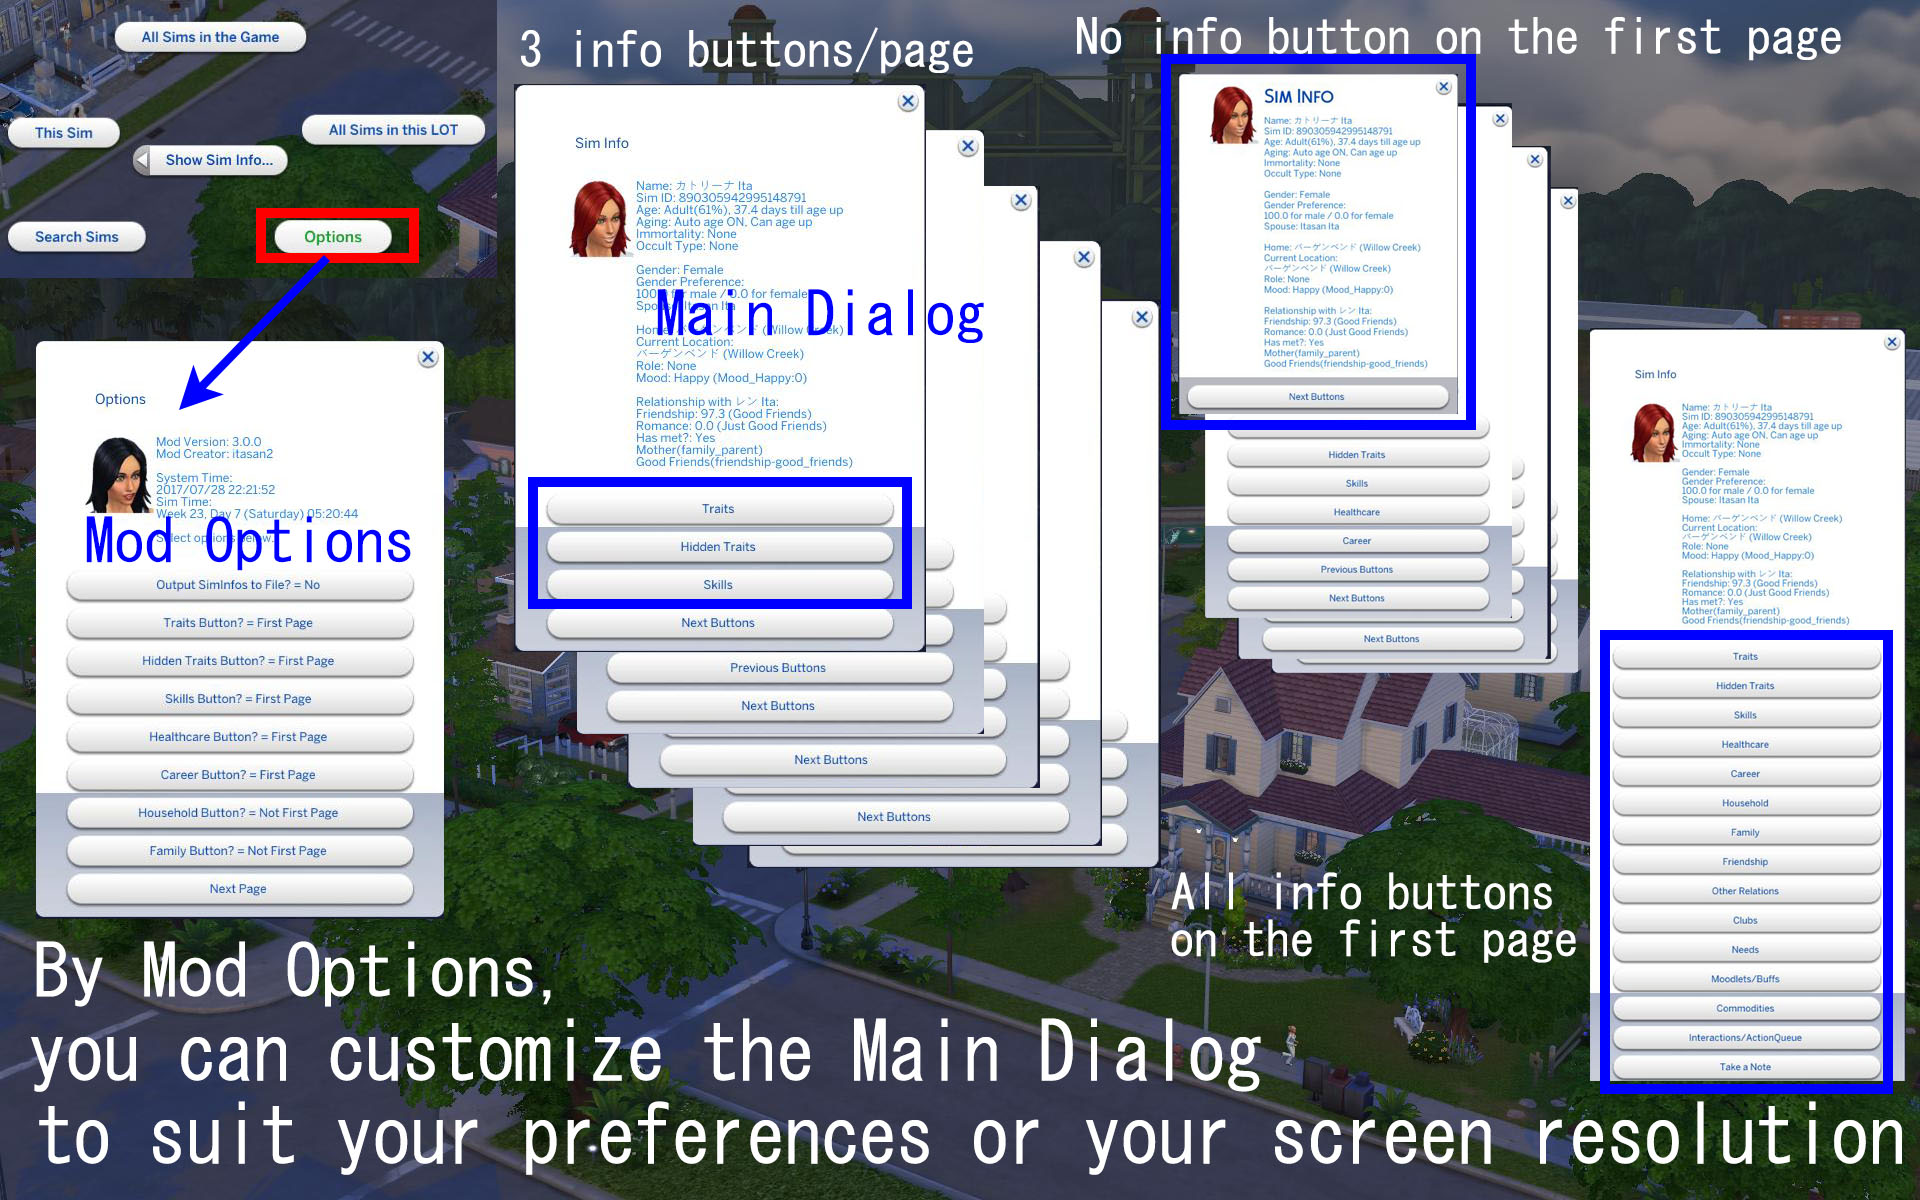 Mod The Sims Show Search Sim Info Mod